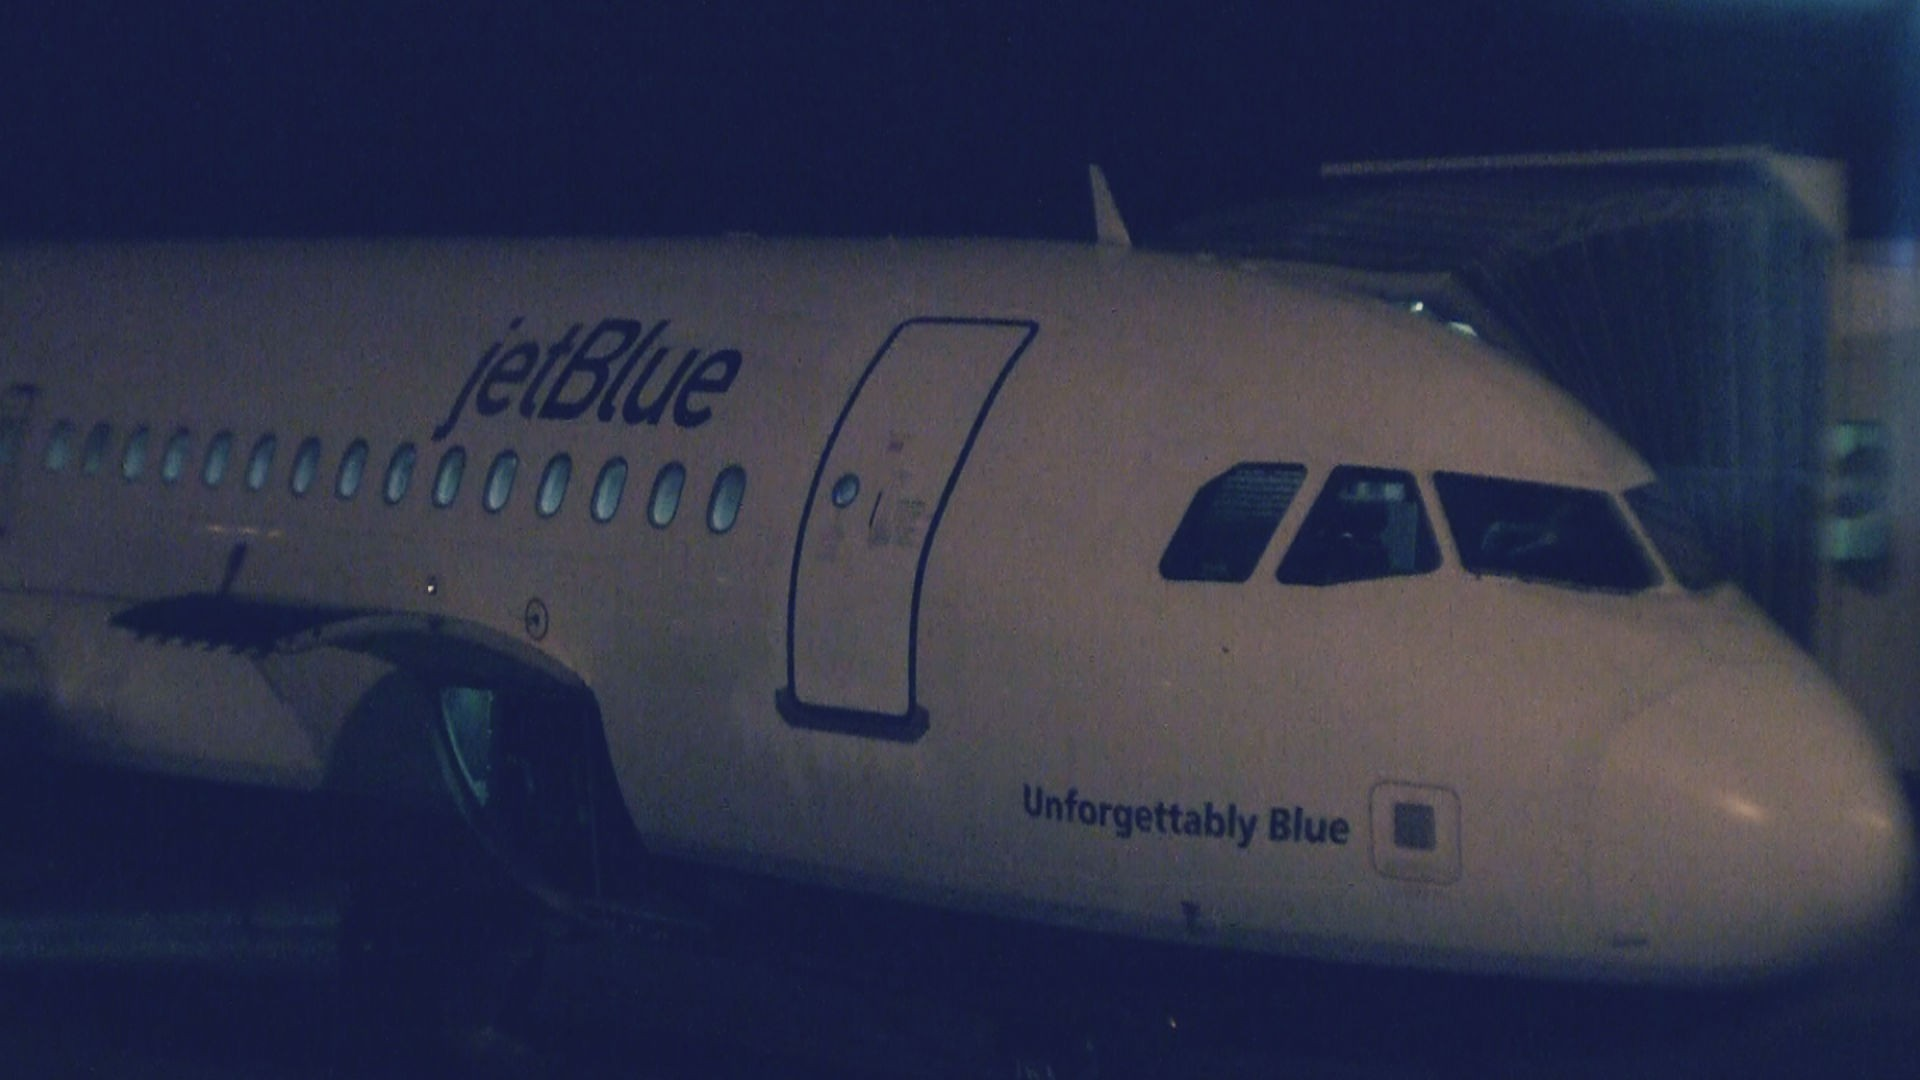 JetBlue Unforgettably Blue A320